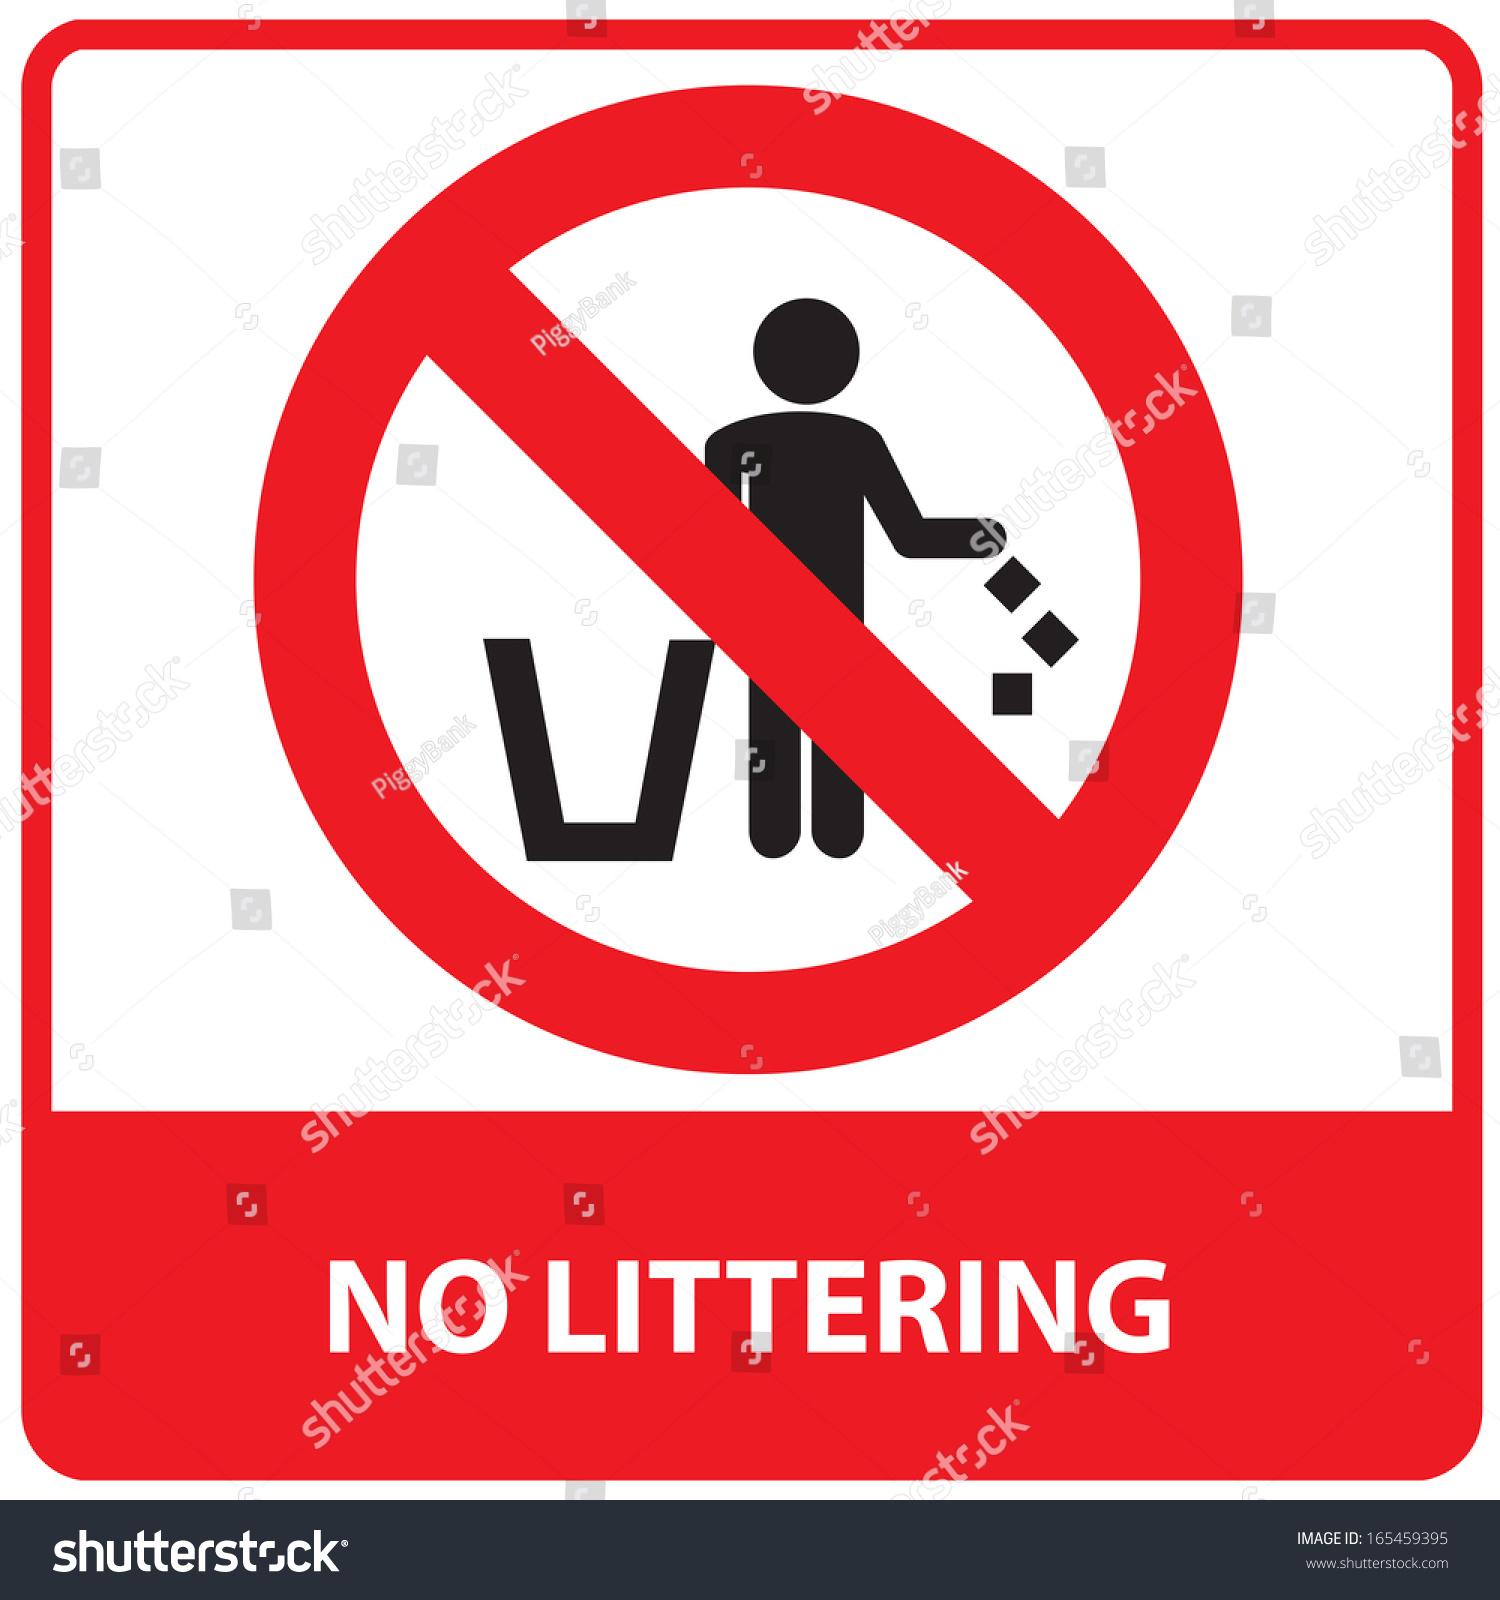 Royalty Free Stock Illustration Of No Littering Sign Stock